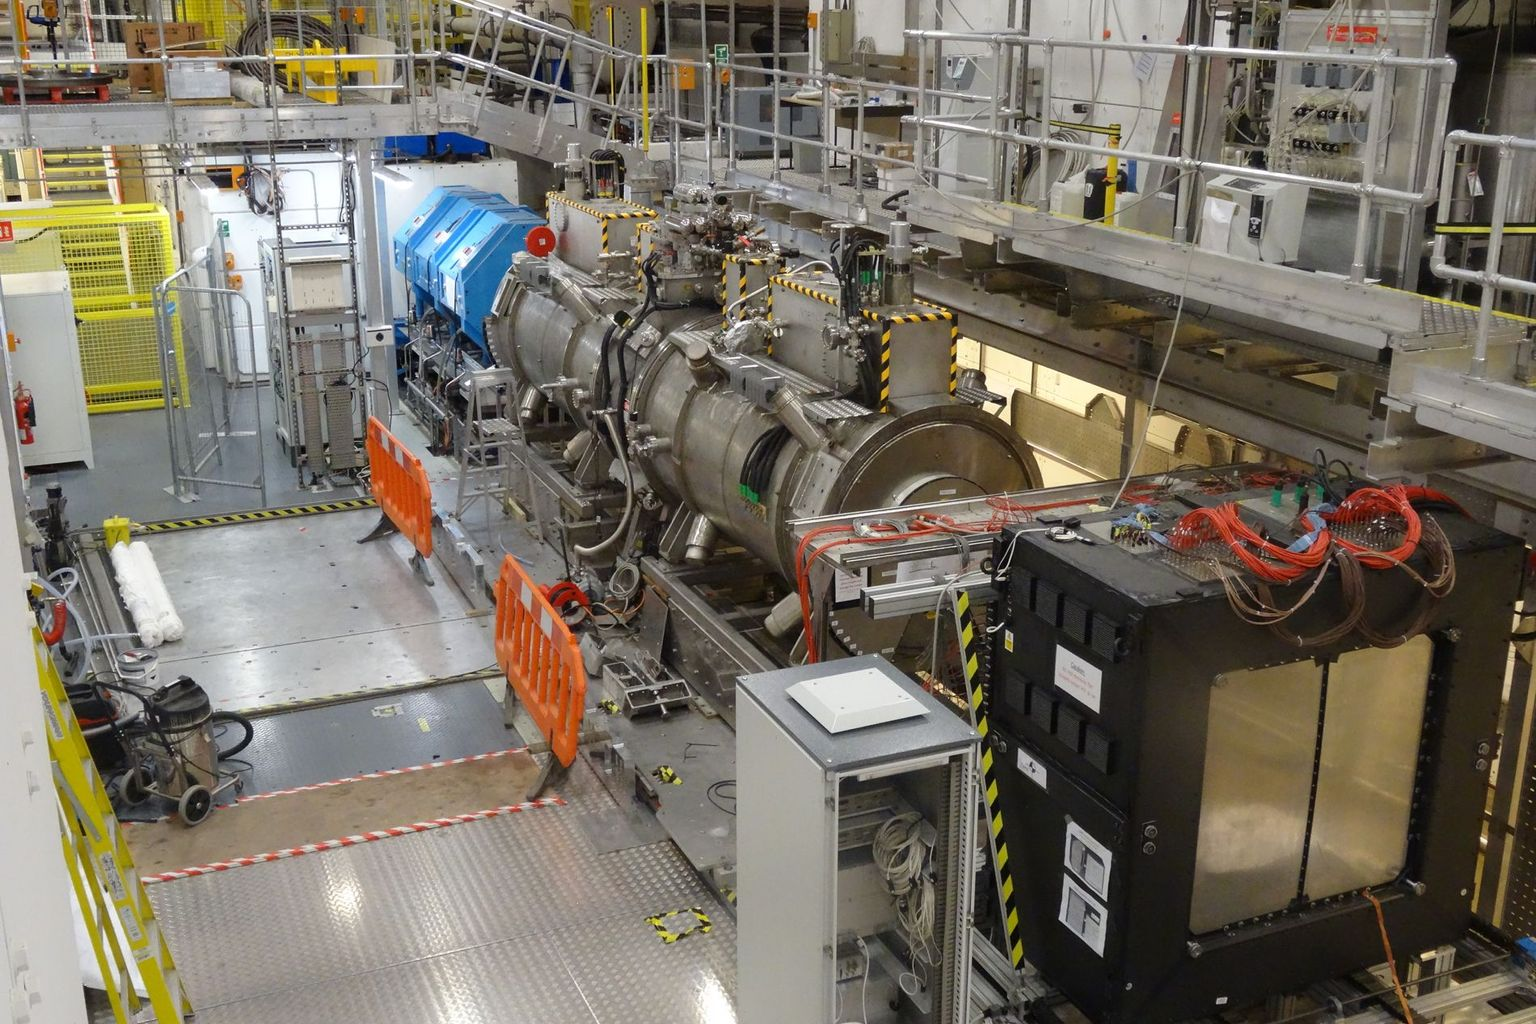 The Muon Ionization Cooling Experiment (MICE) was conducted at the Rutherford Appleton Laboratory in United Kingdom.